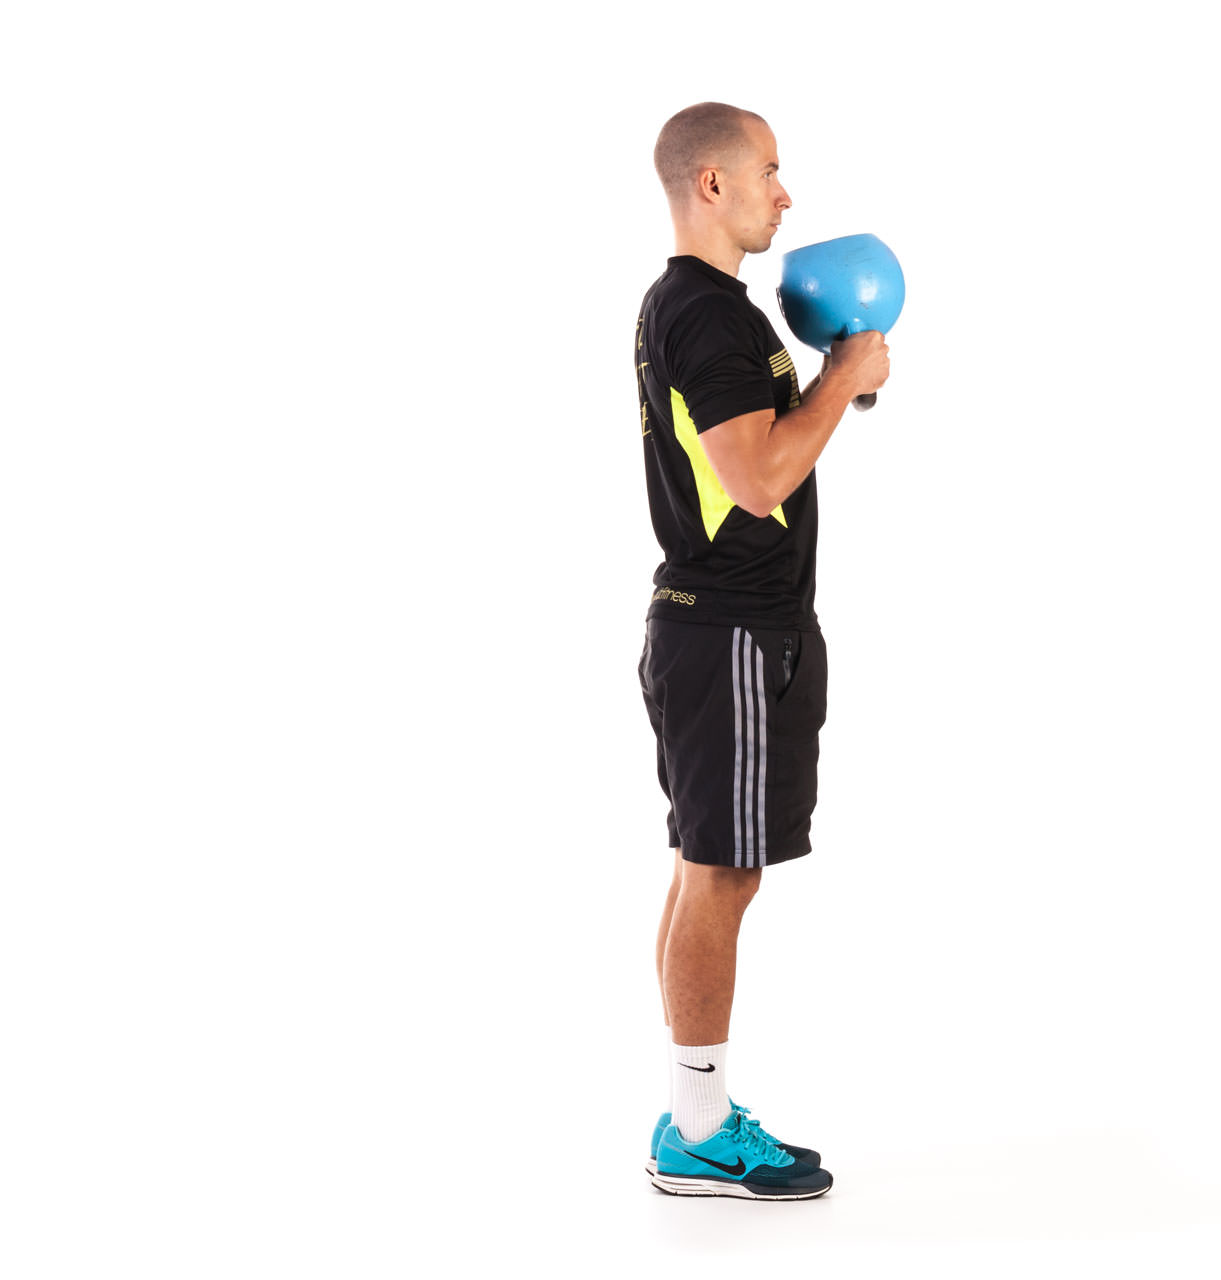 Kettlebell Kneeling to Stand Up frame #3